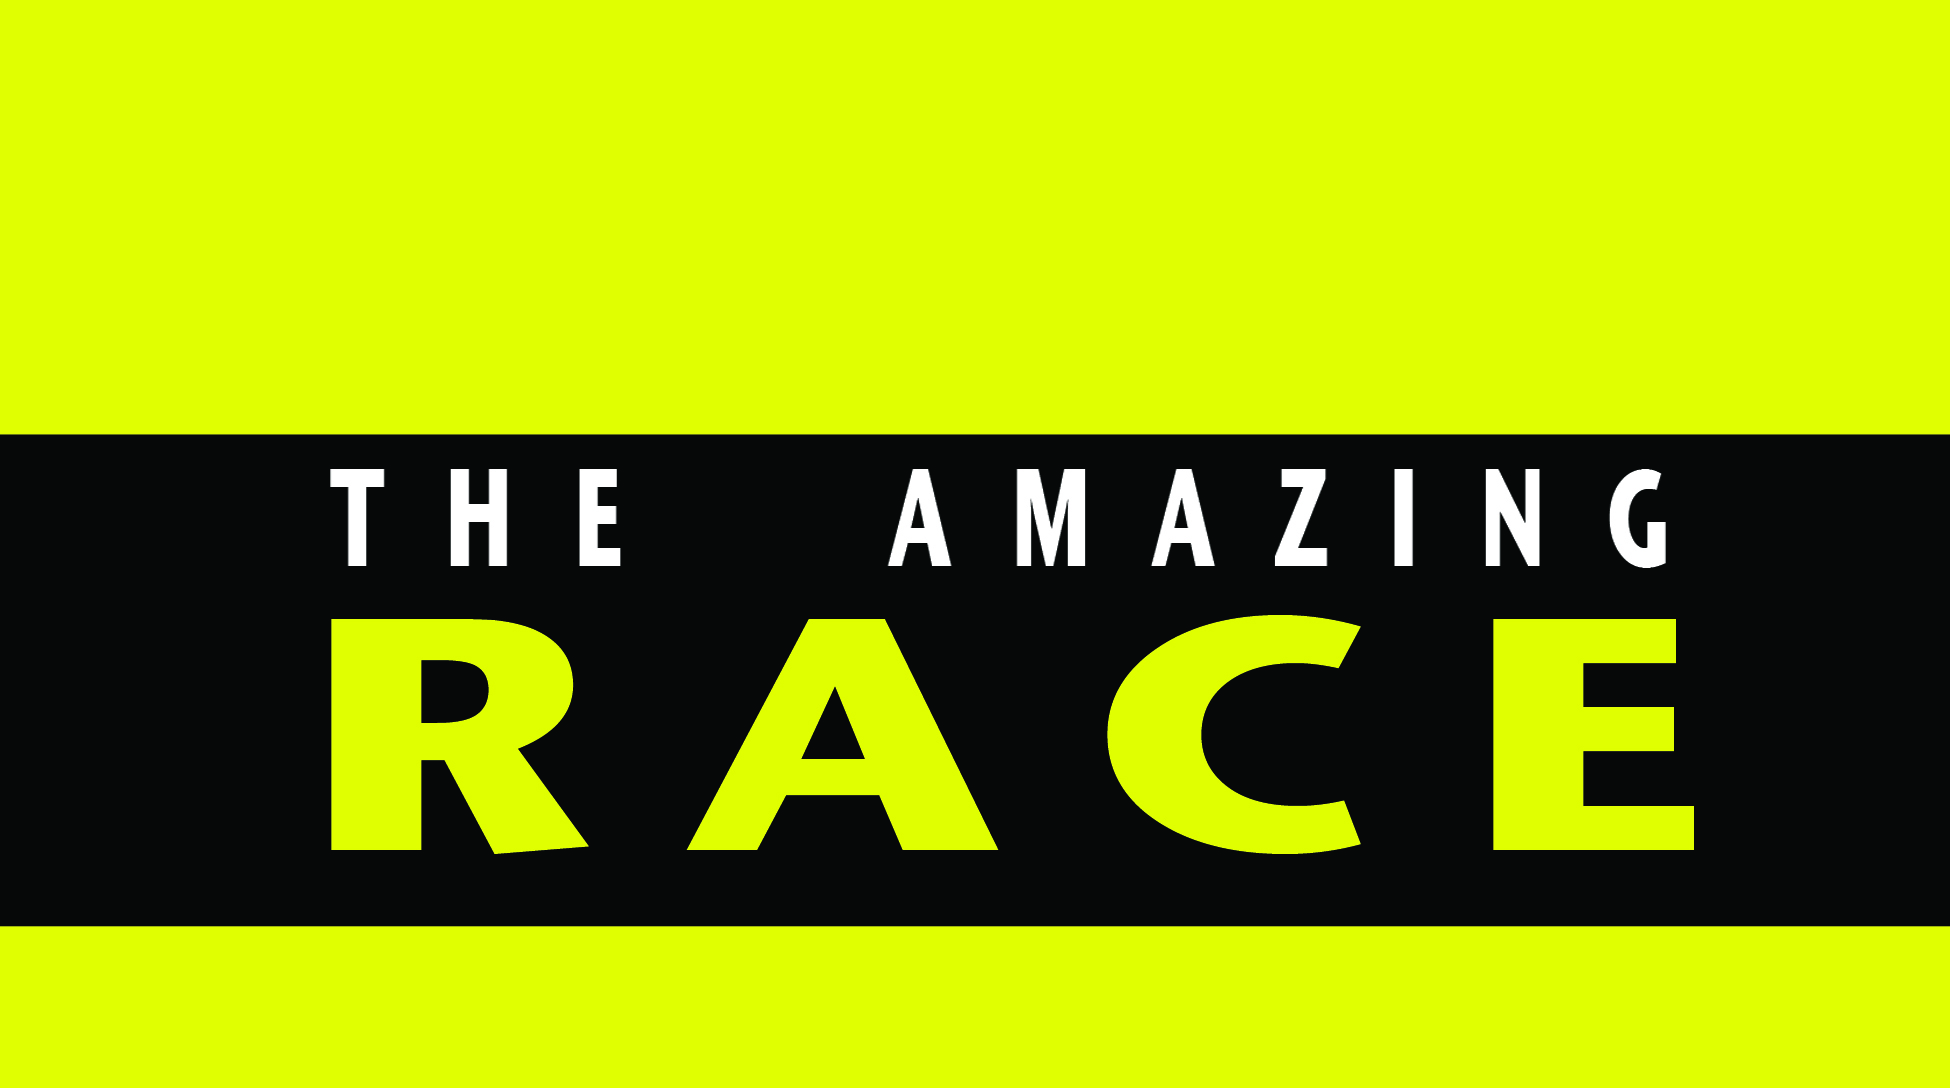 the amazing race clue template - amazing race route info template bing images